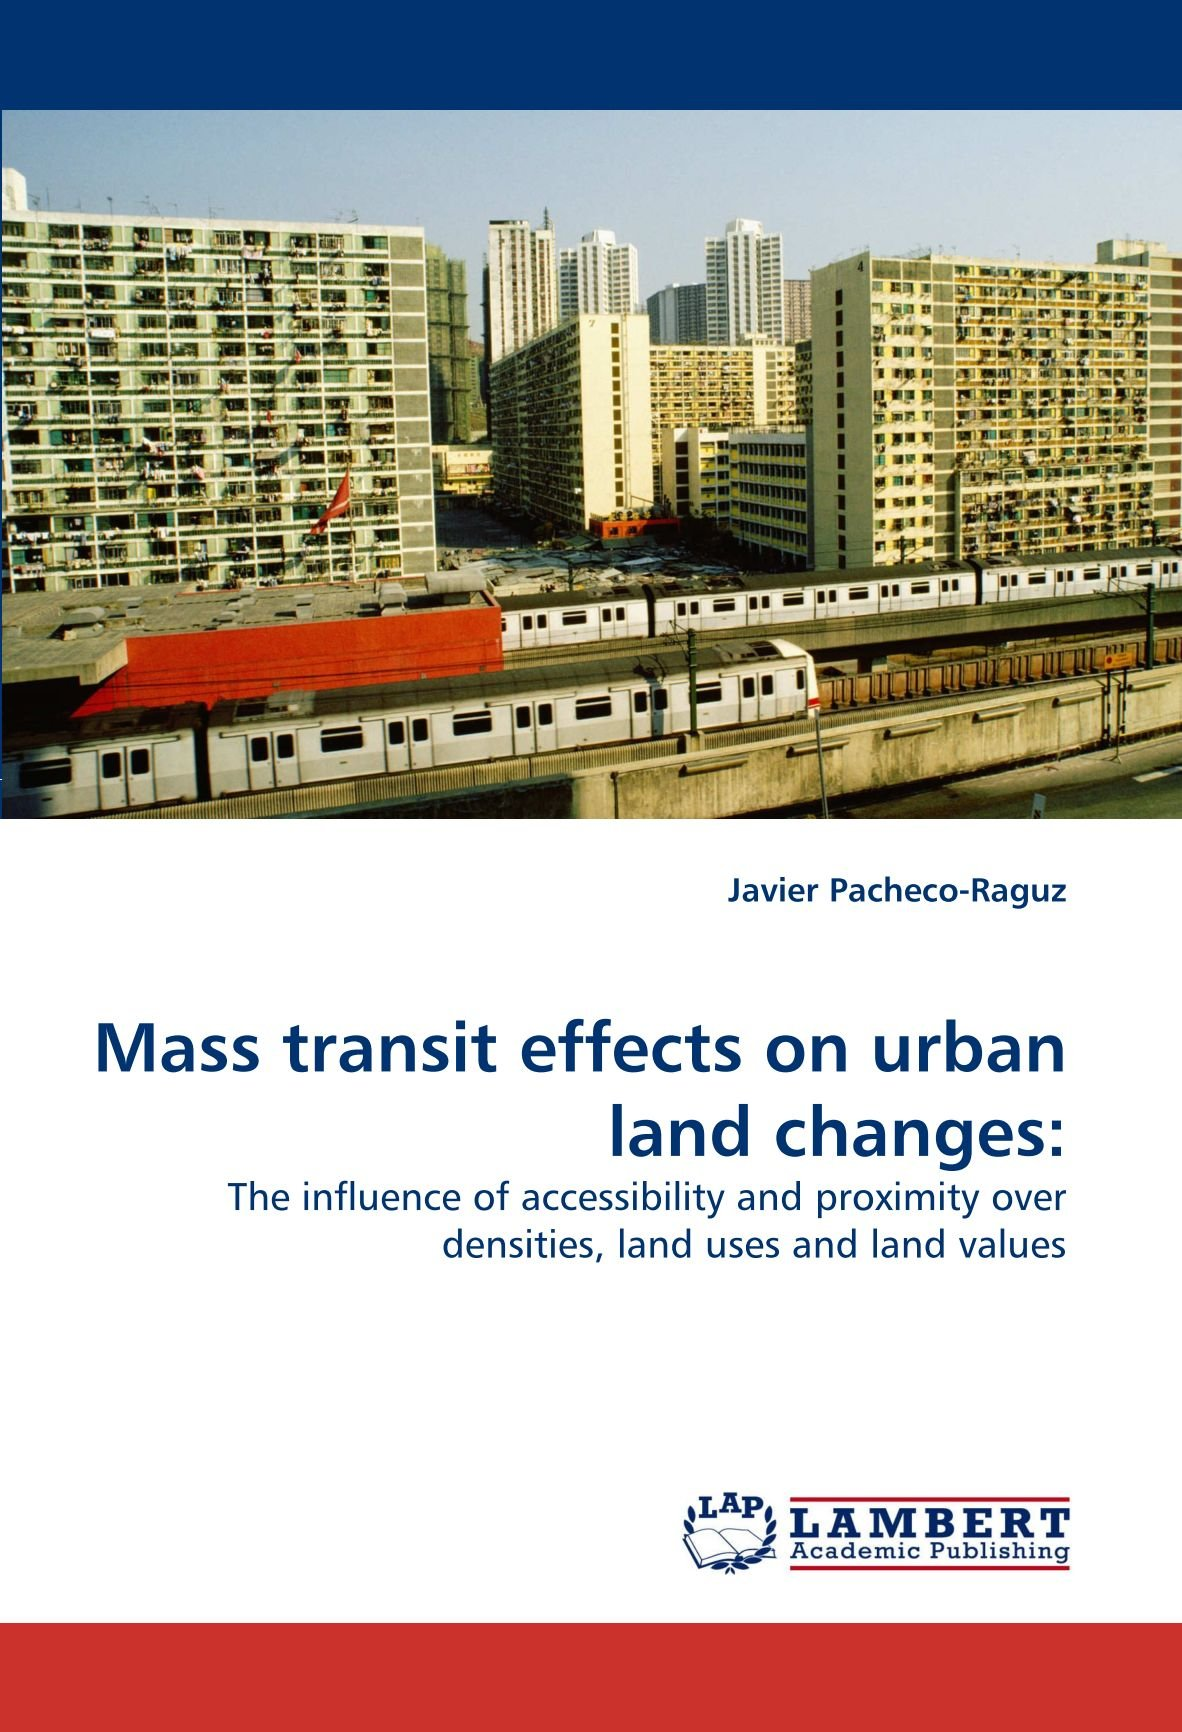 Mass transit effects on urban land changes:: The influence of accessibility and proximity over densities, land uses and land values